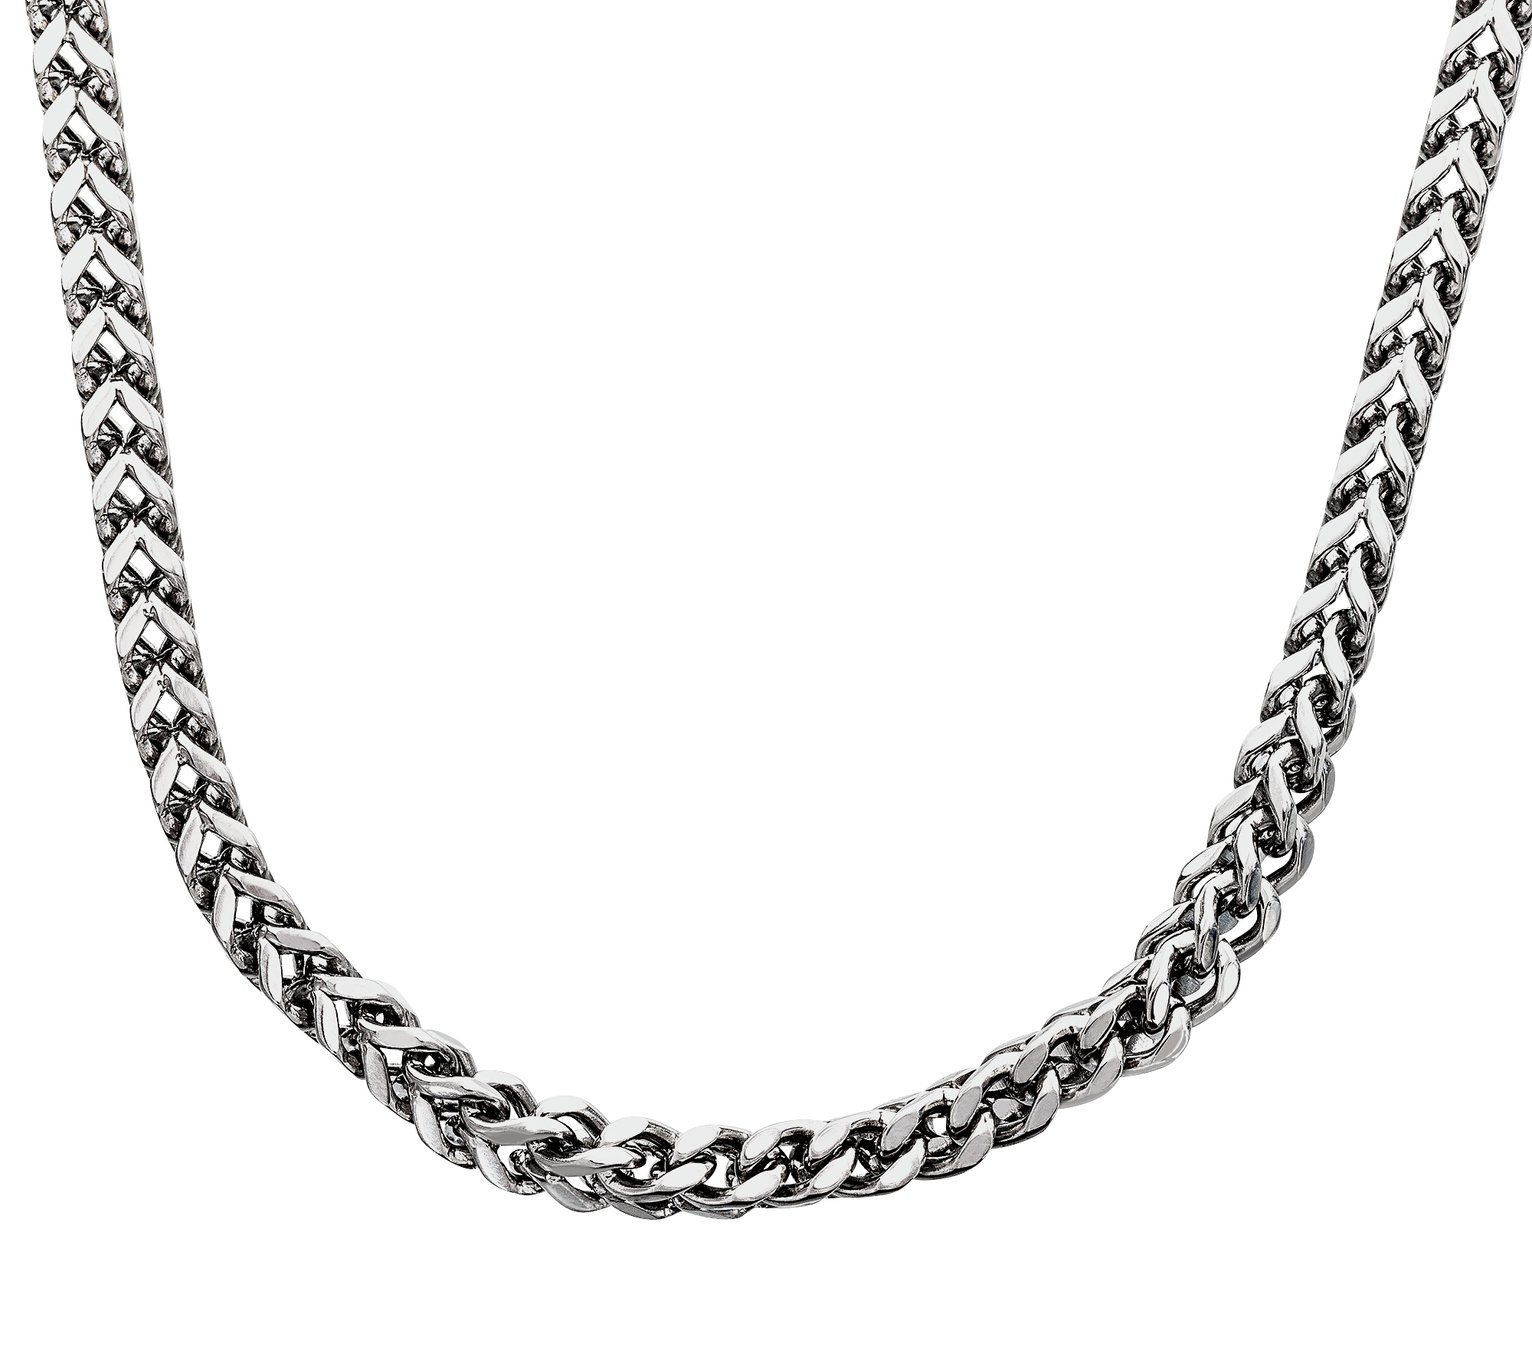 Revere Men's Stainless Steel Box Curb Chain